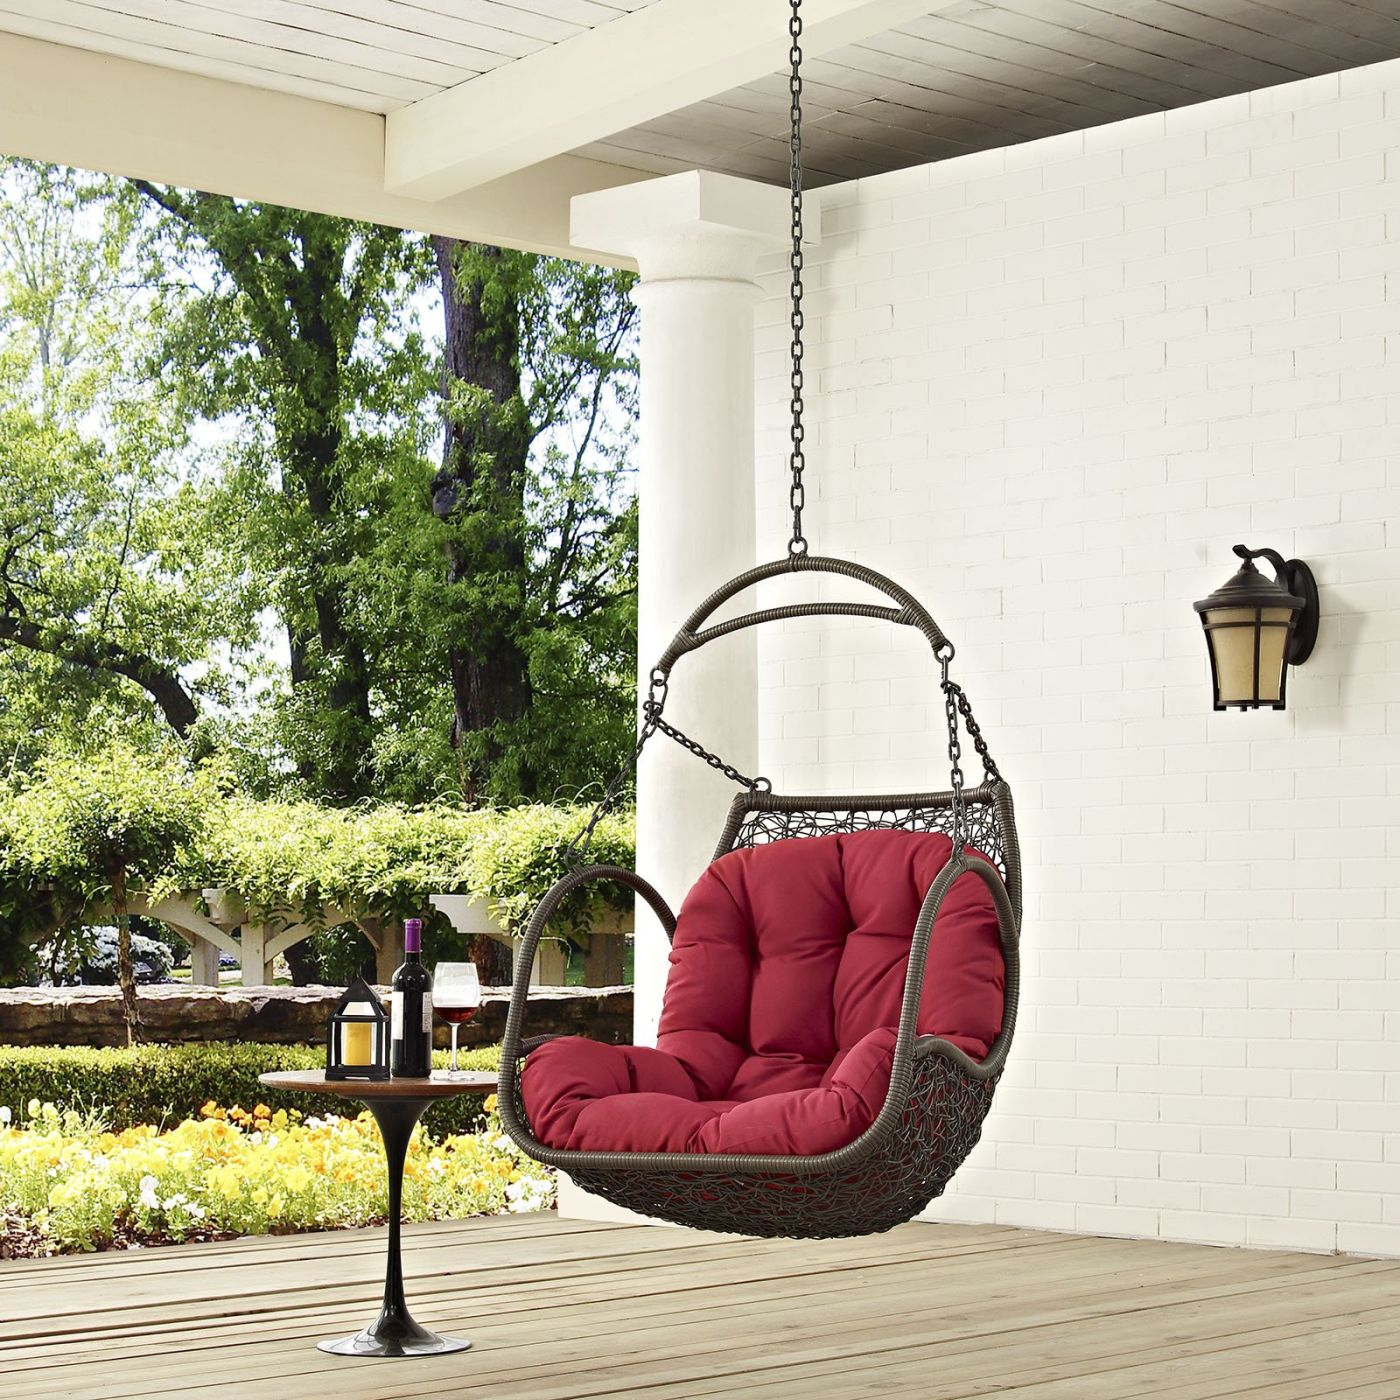 Modway Arbor Outdoor Patio Swing Chair Without Stand EEI 2659 WHI